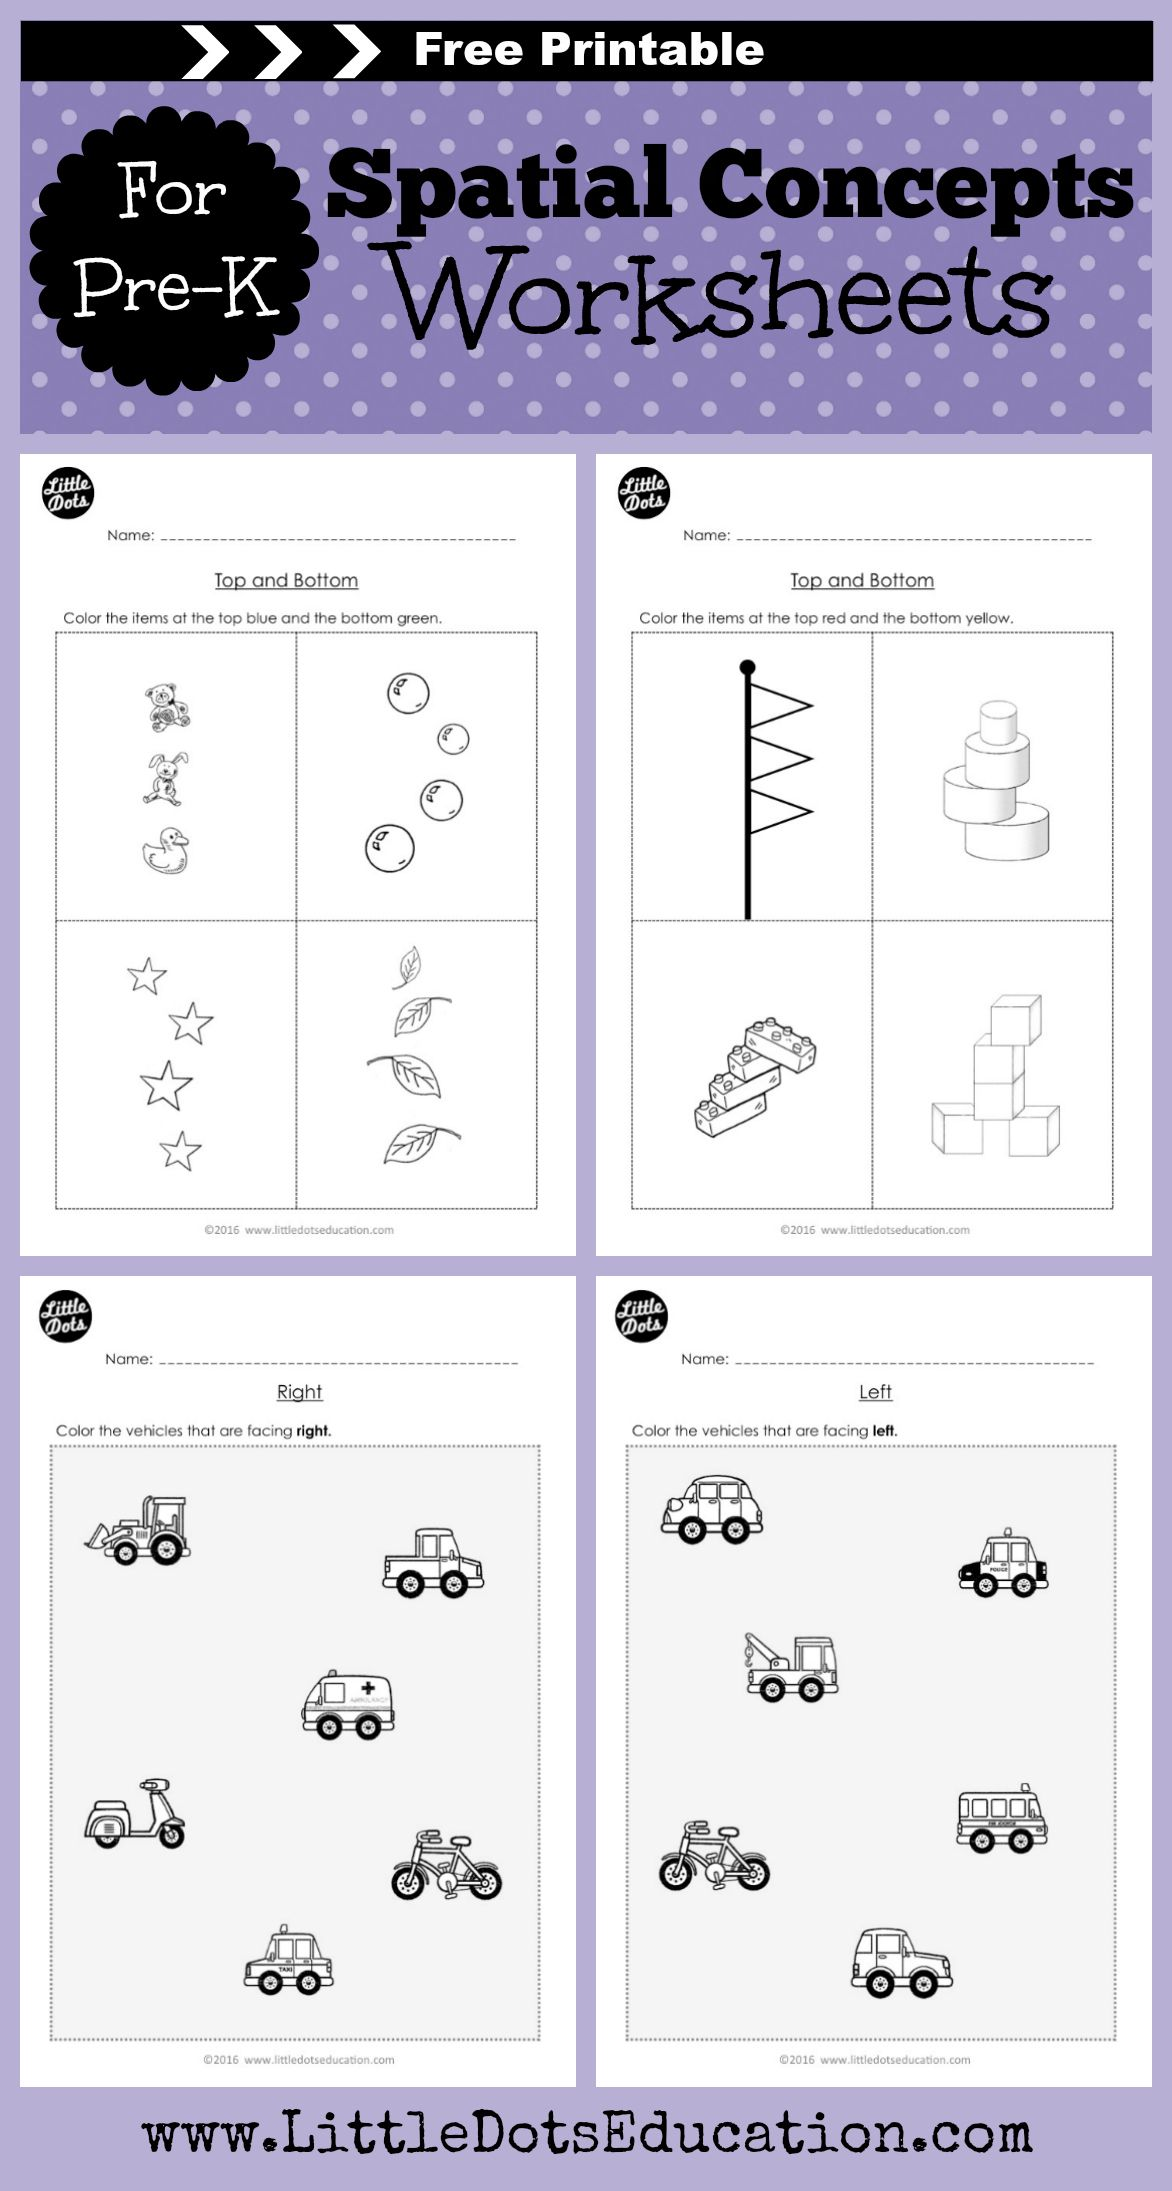 medium resolution of Pre-K Spatial Concepts Worksheets and Activities   Spatial concepts